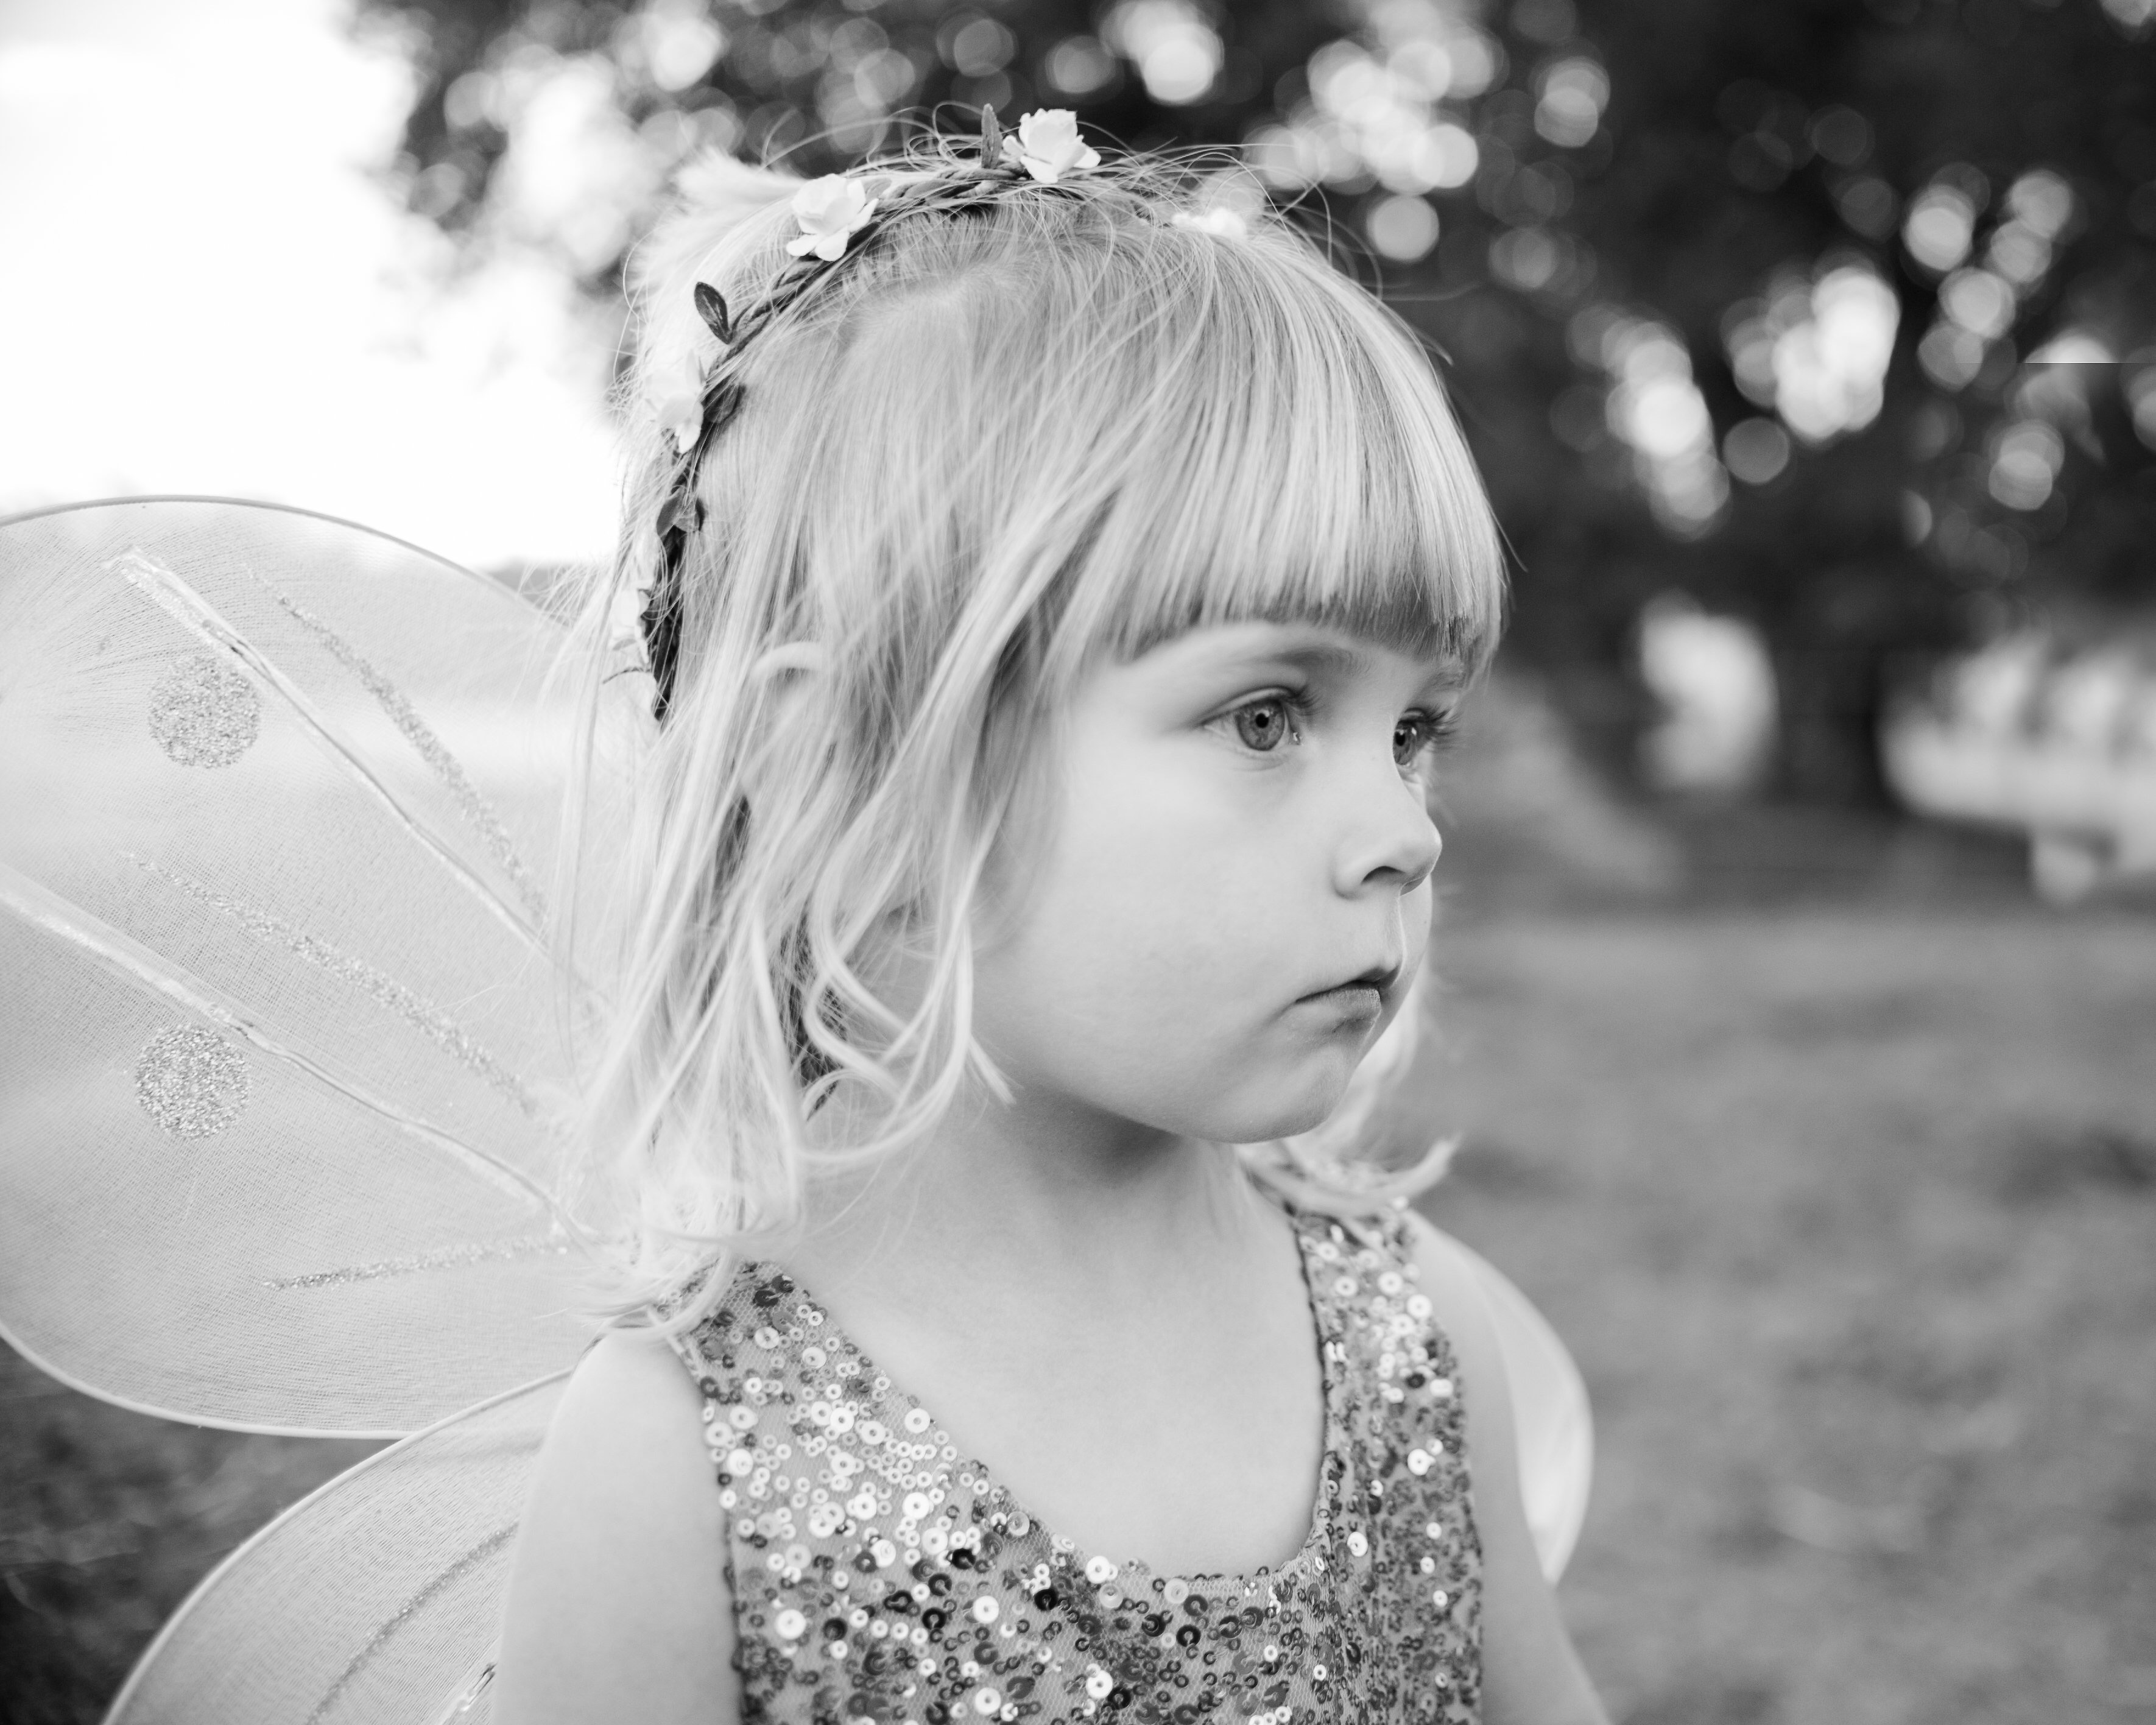 Fairy princess in flower crown poses in an open field in Creston California.